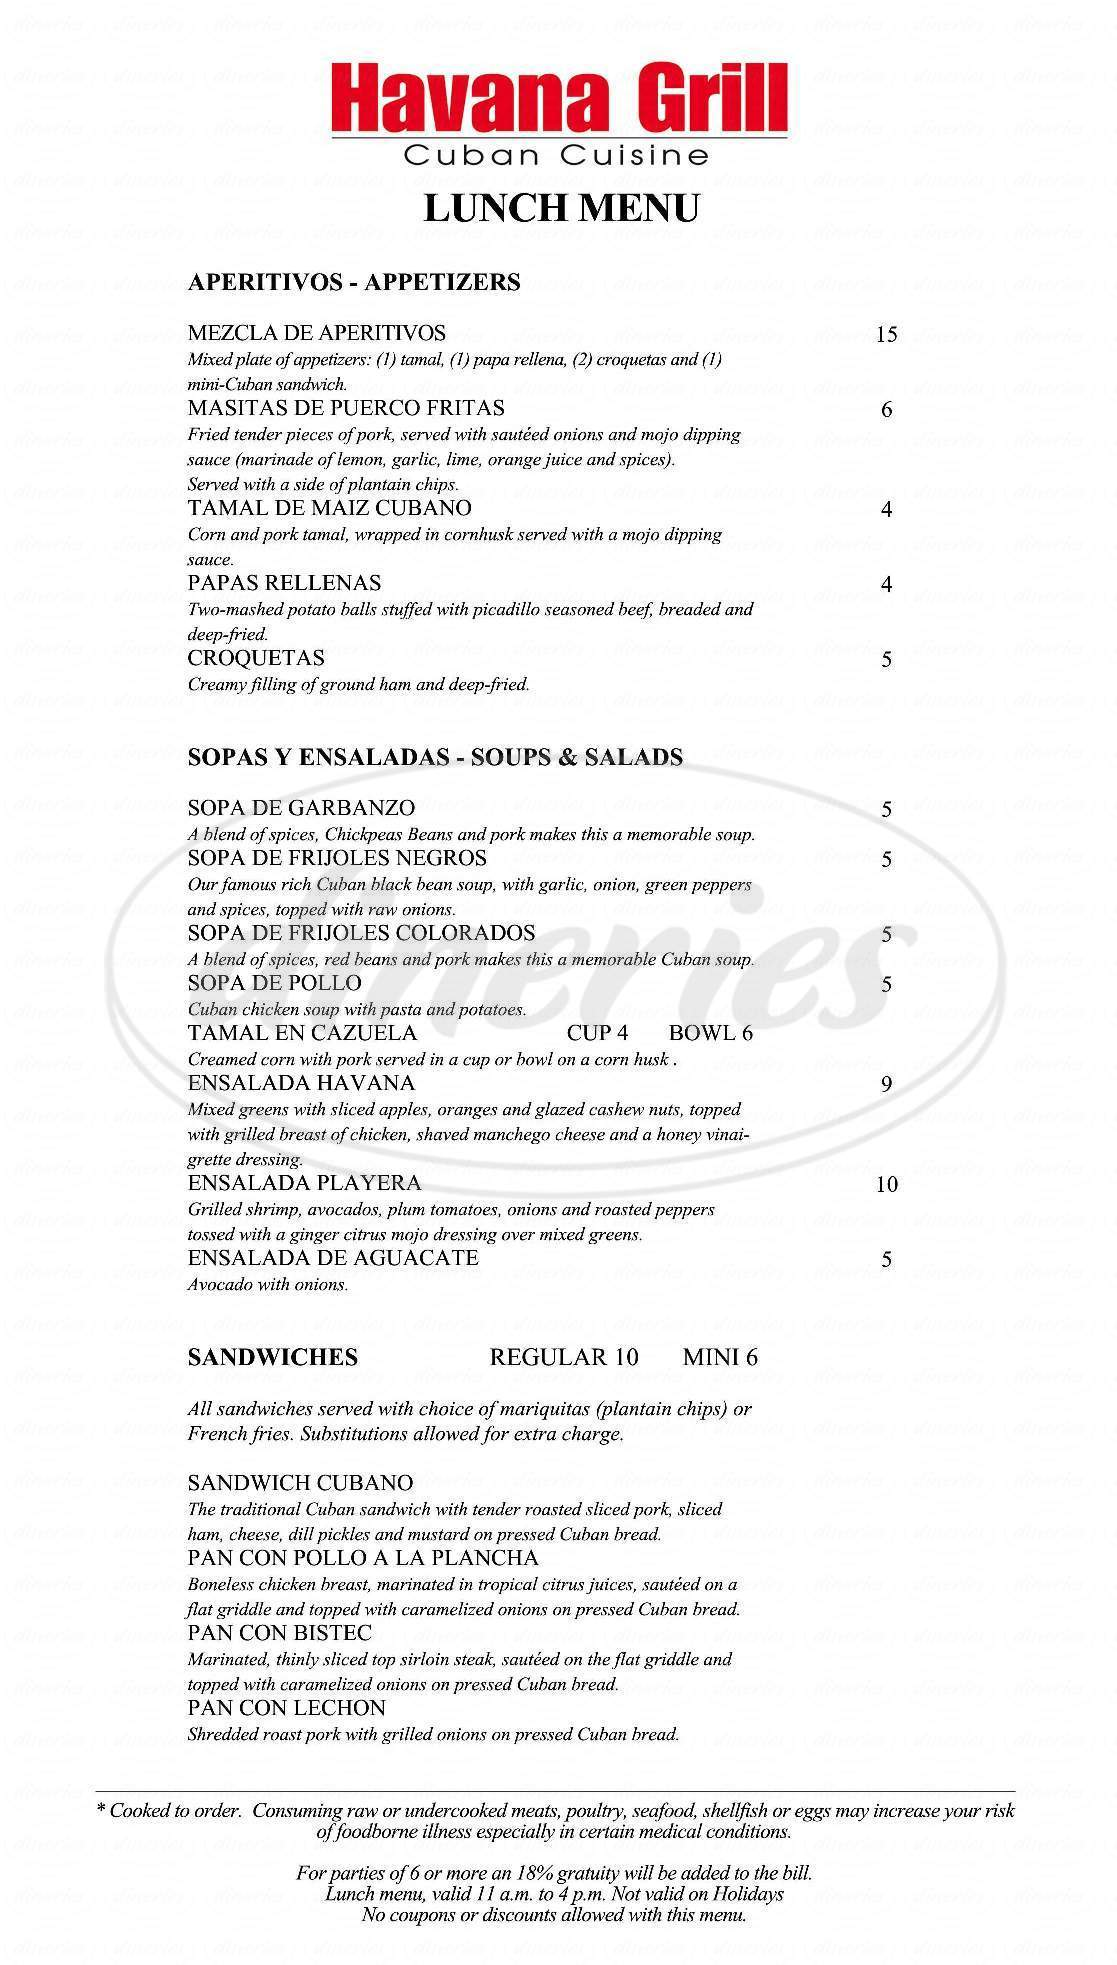 menu for Havana Grill